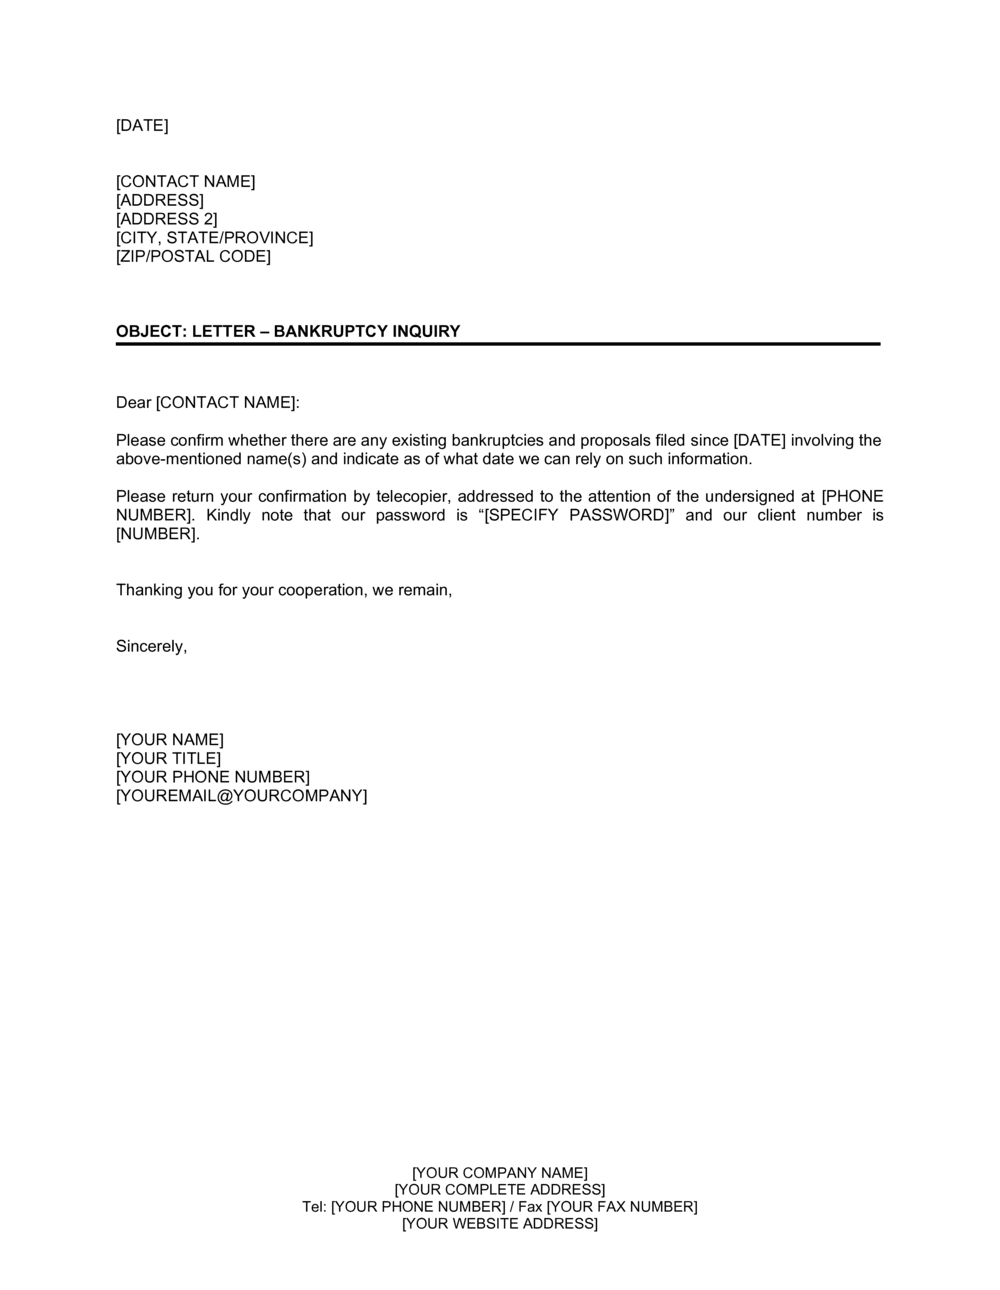 Business-in-a-Box's Letter Bankruptcy Inquiry Template